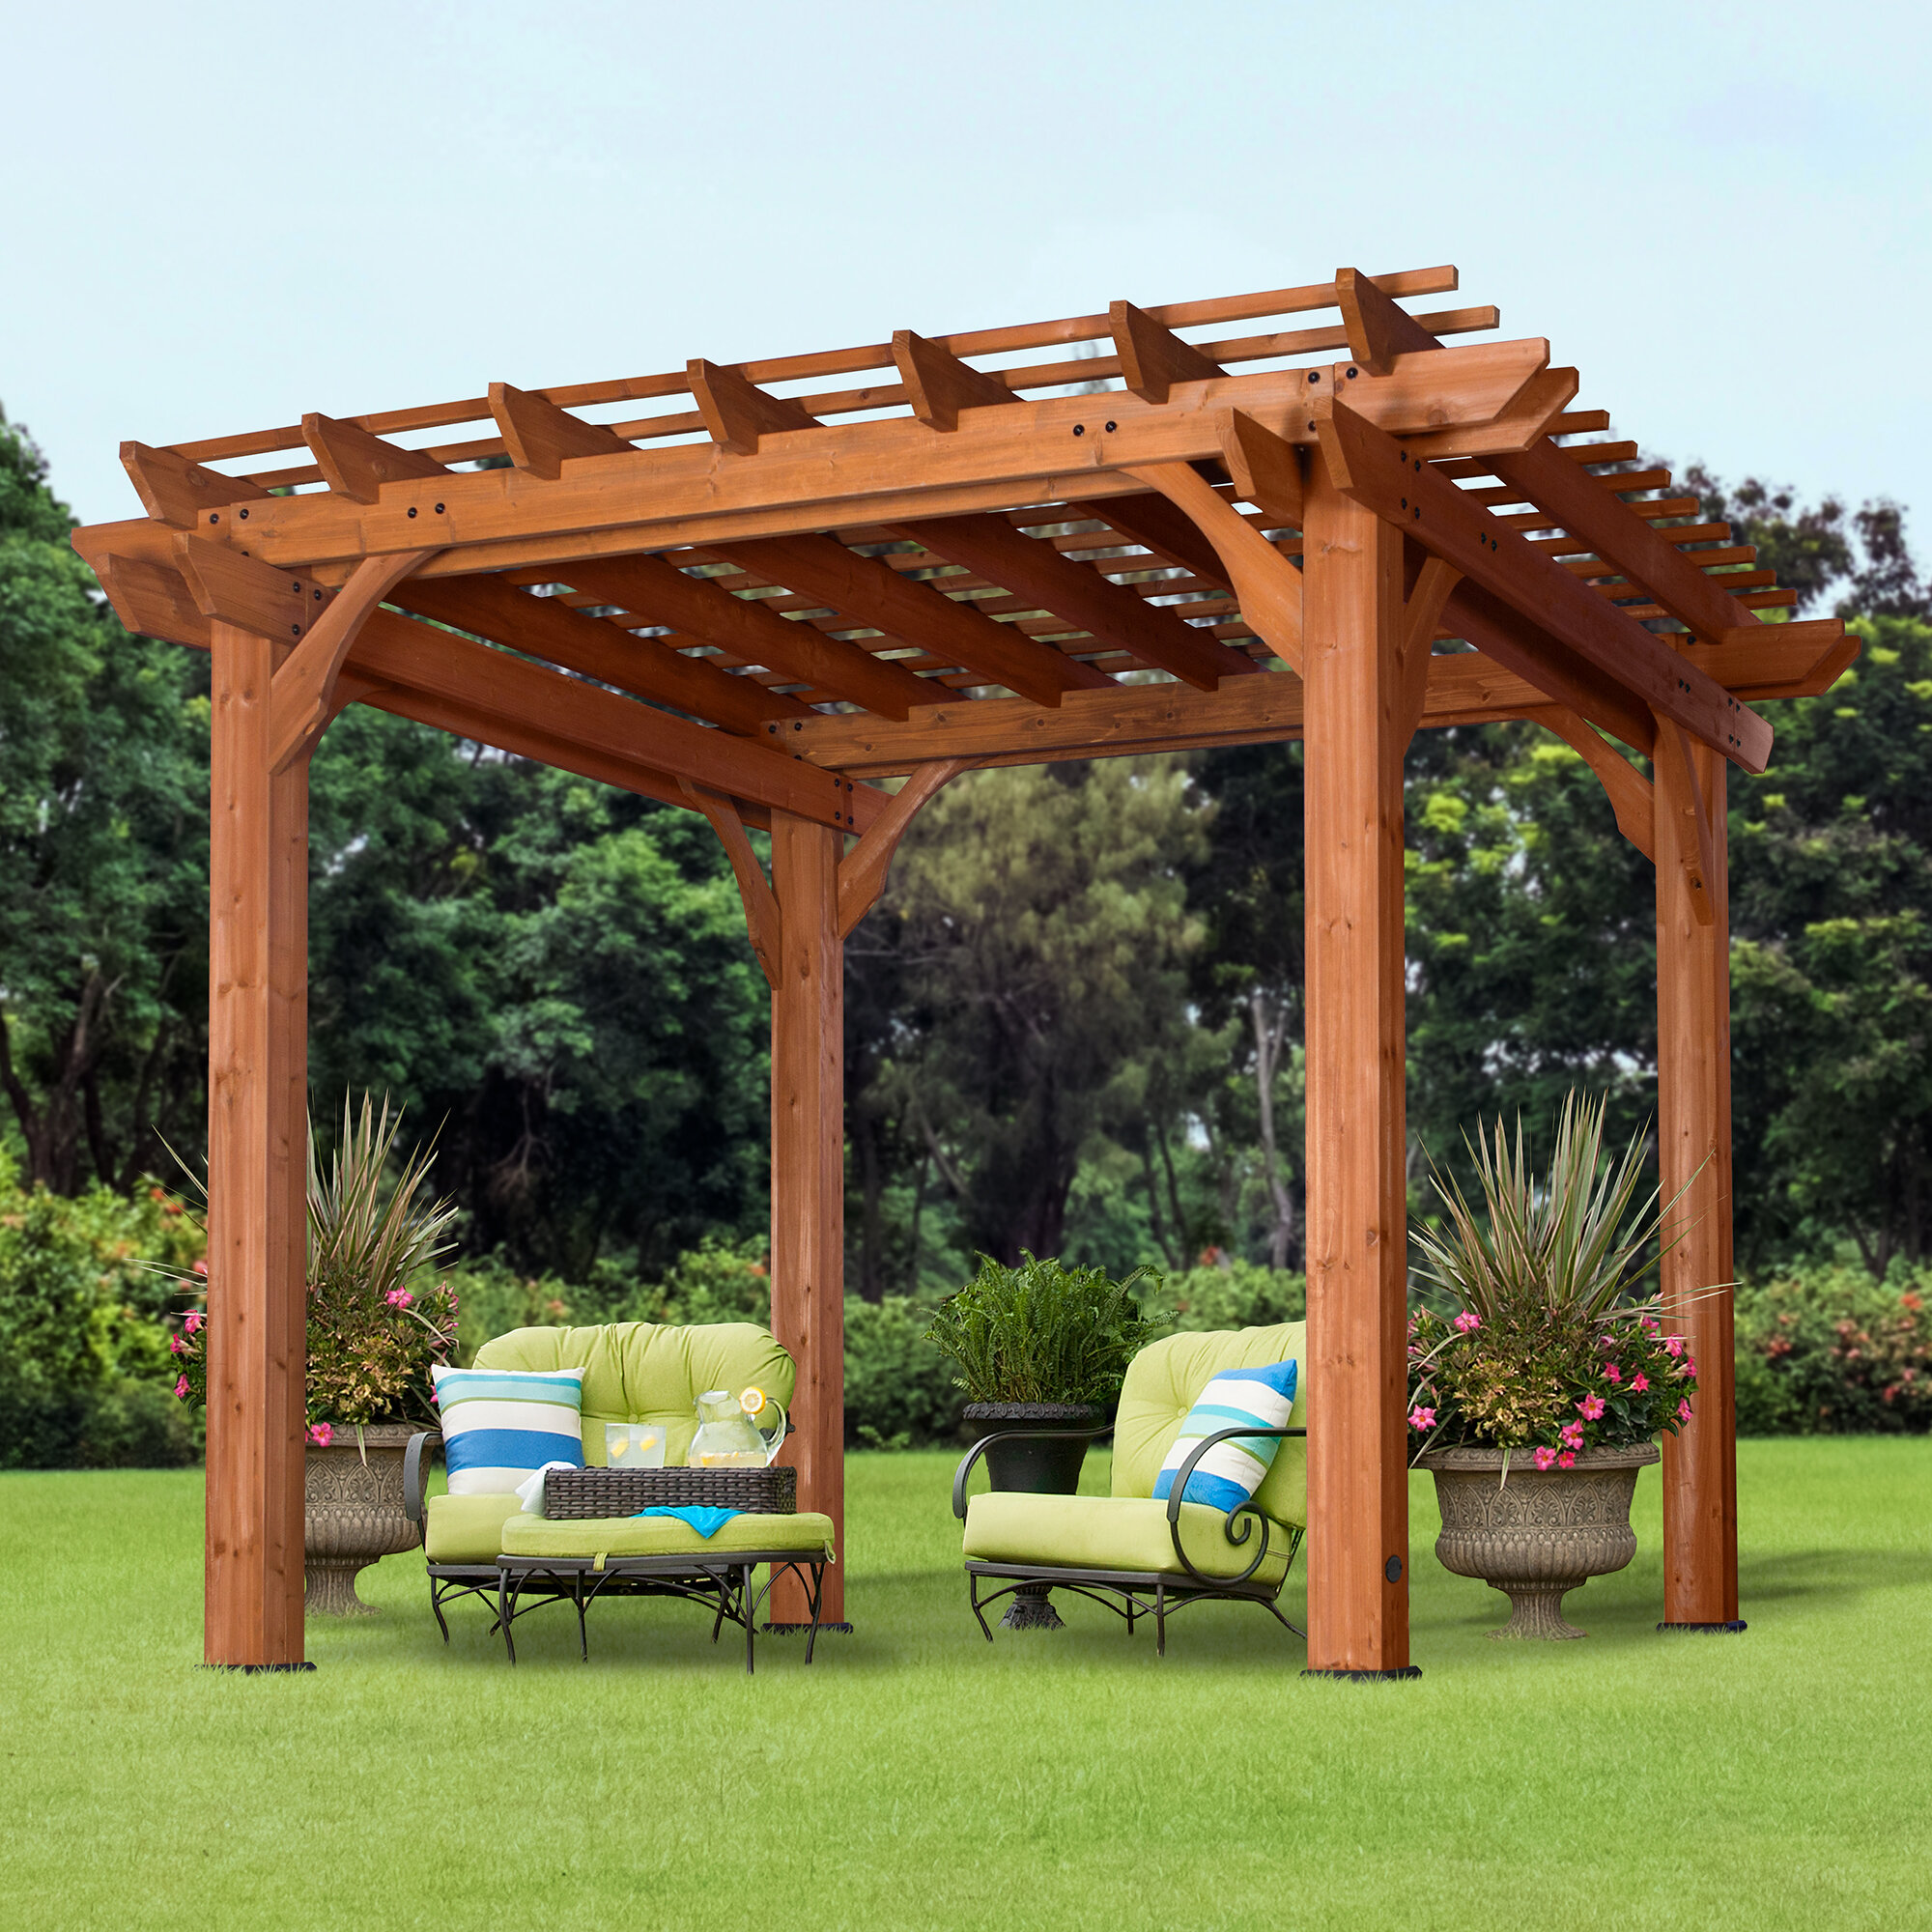 Backyard Discovery Cedar 10 Ft W X D Solid Wood Pergola Reviews Wayfair